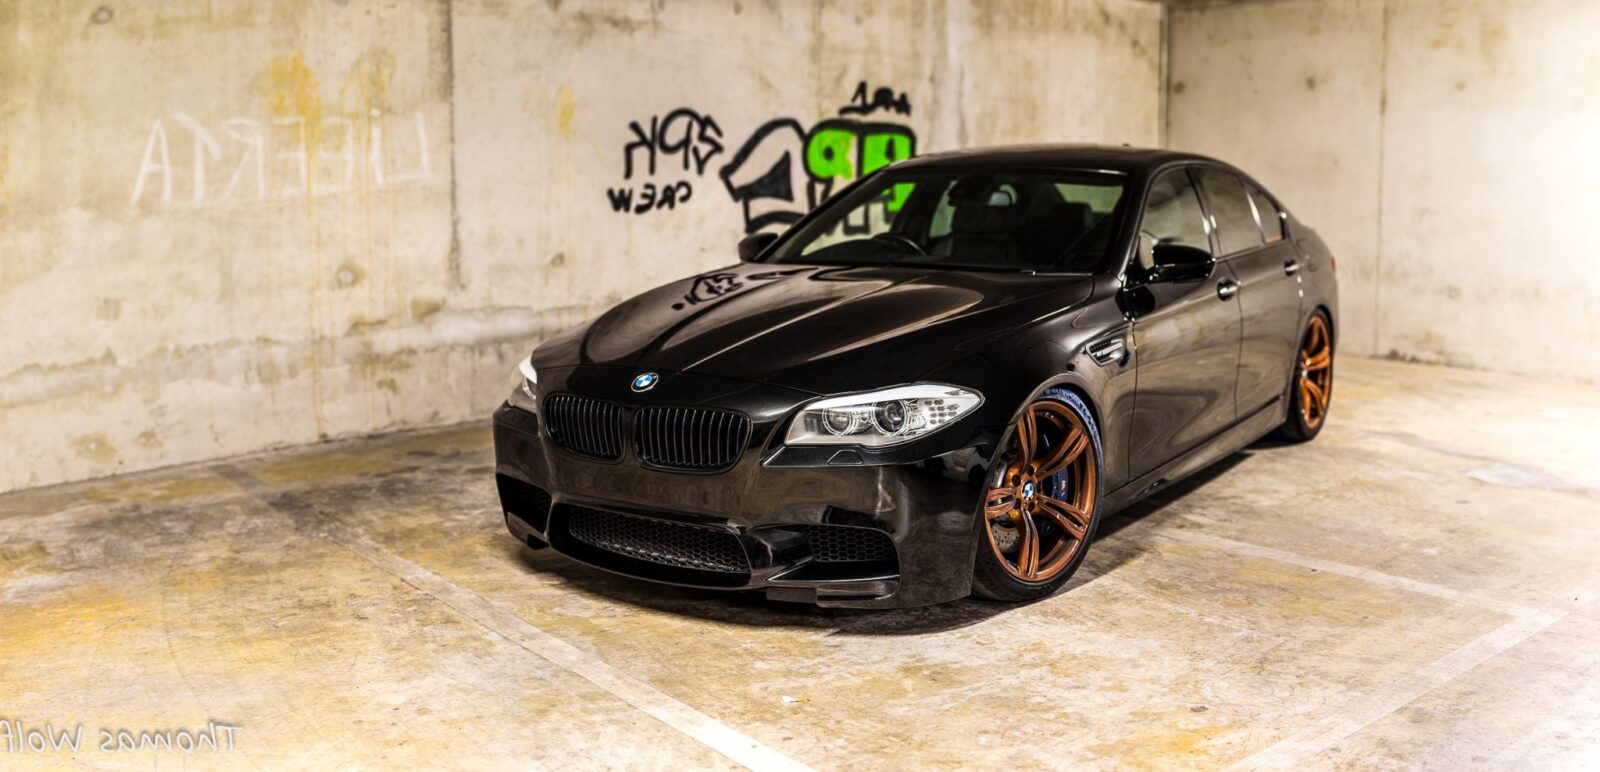 Car Games Wallpapers Hd 1080p 36 Bmw M5 F10 Wallpapers Hd High Quality Download